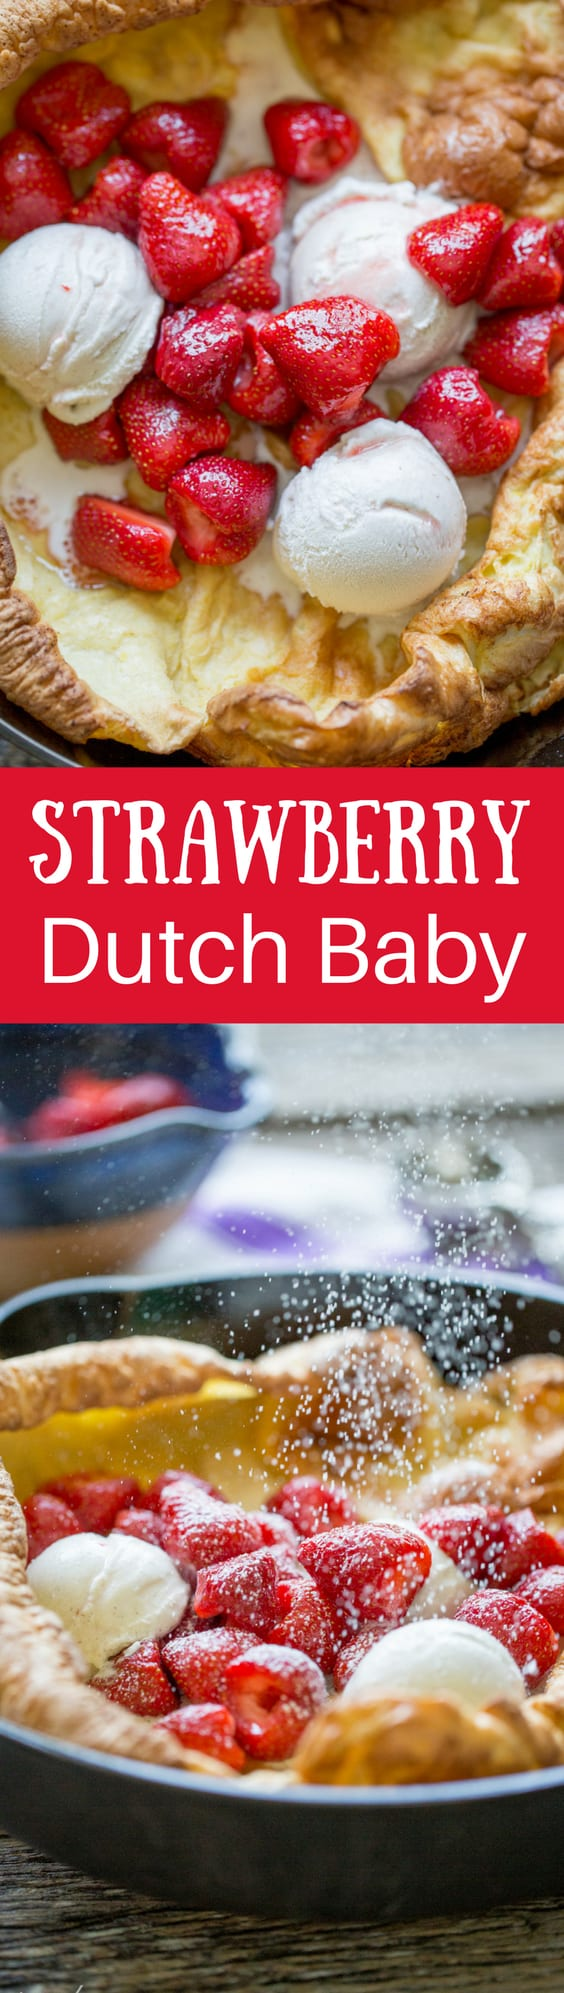 Strawberry Dutch Baby ~ Dutch Baby or German Pancake with Grand Marnier soaked Strawberries and Vanilla Bean Ice Cream - an easy and impressive dessert! www.savingdessert.com